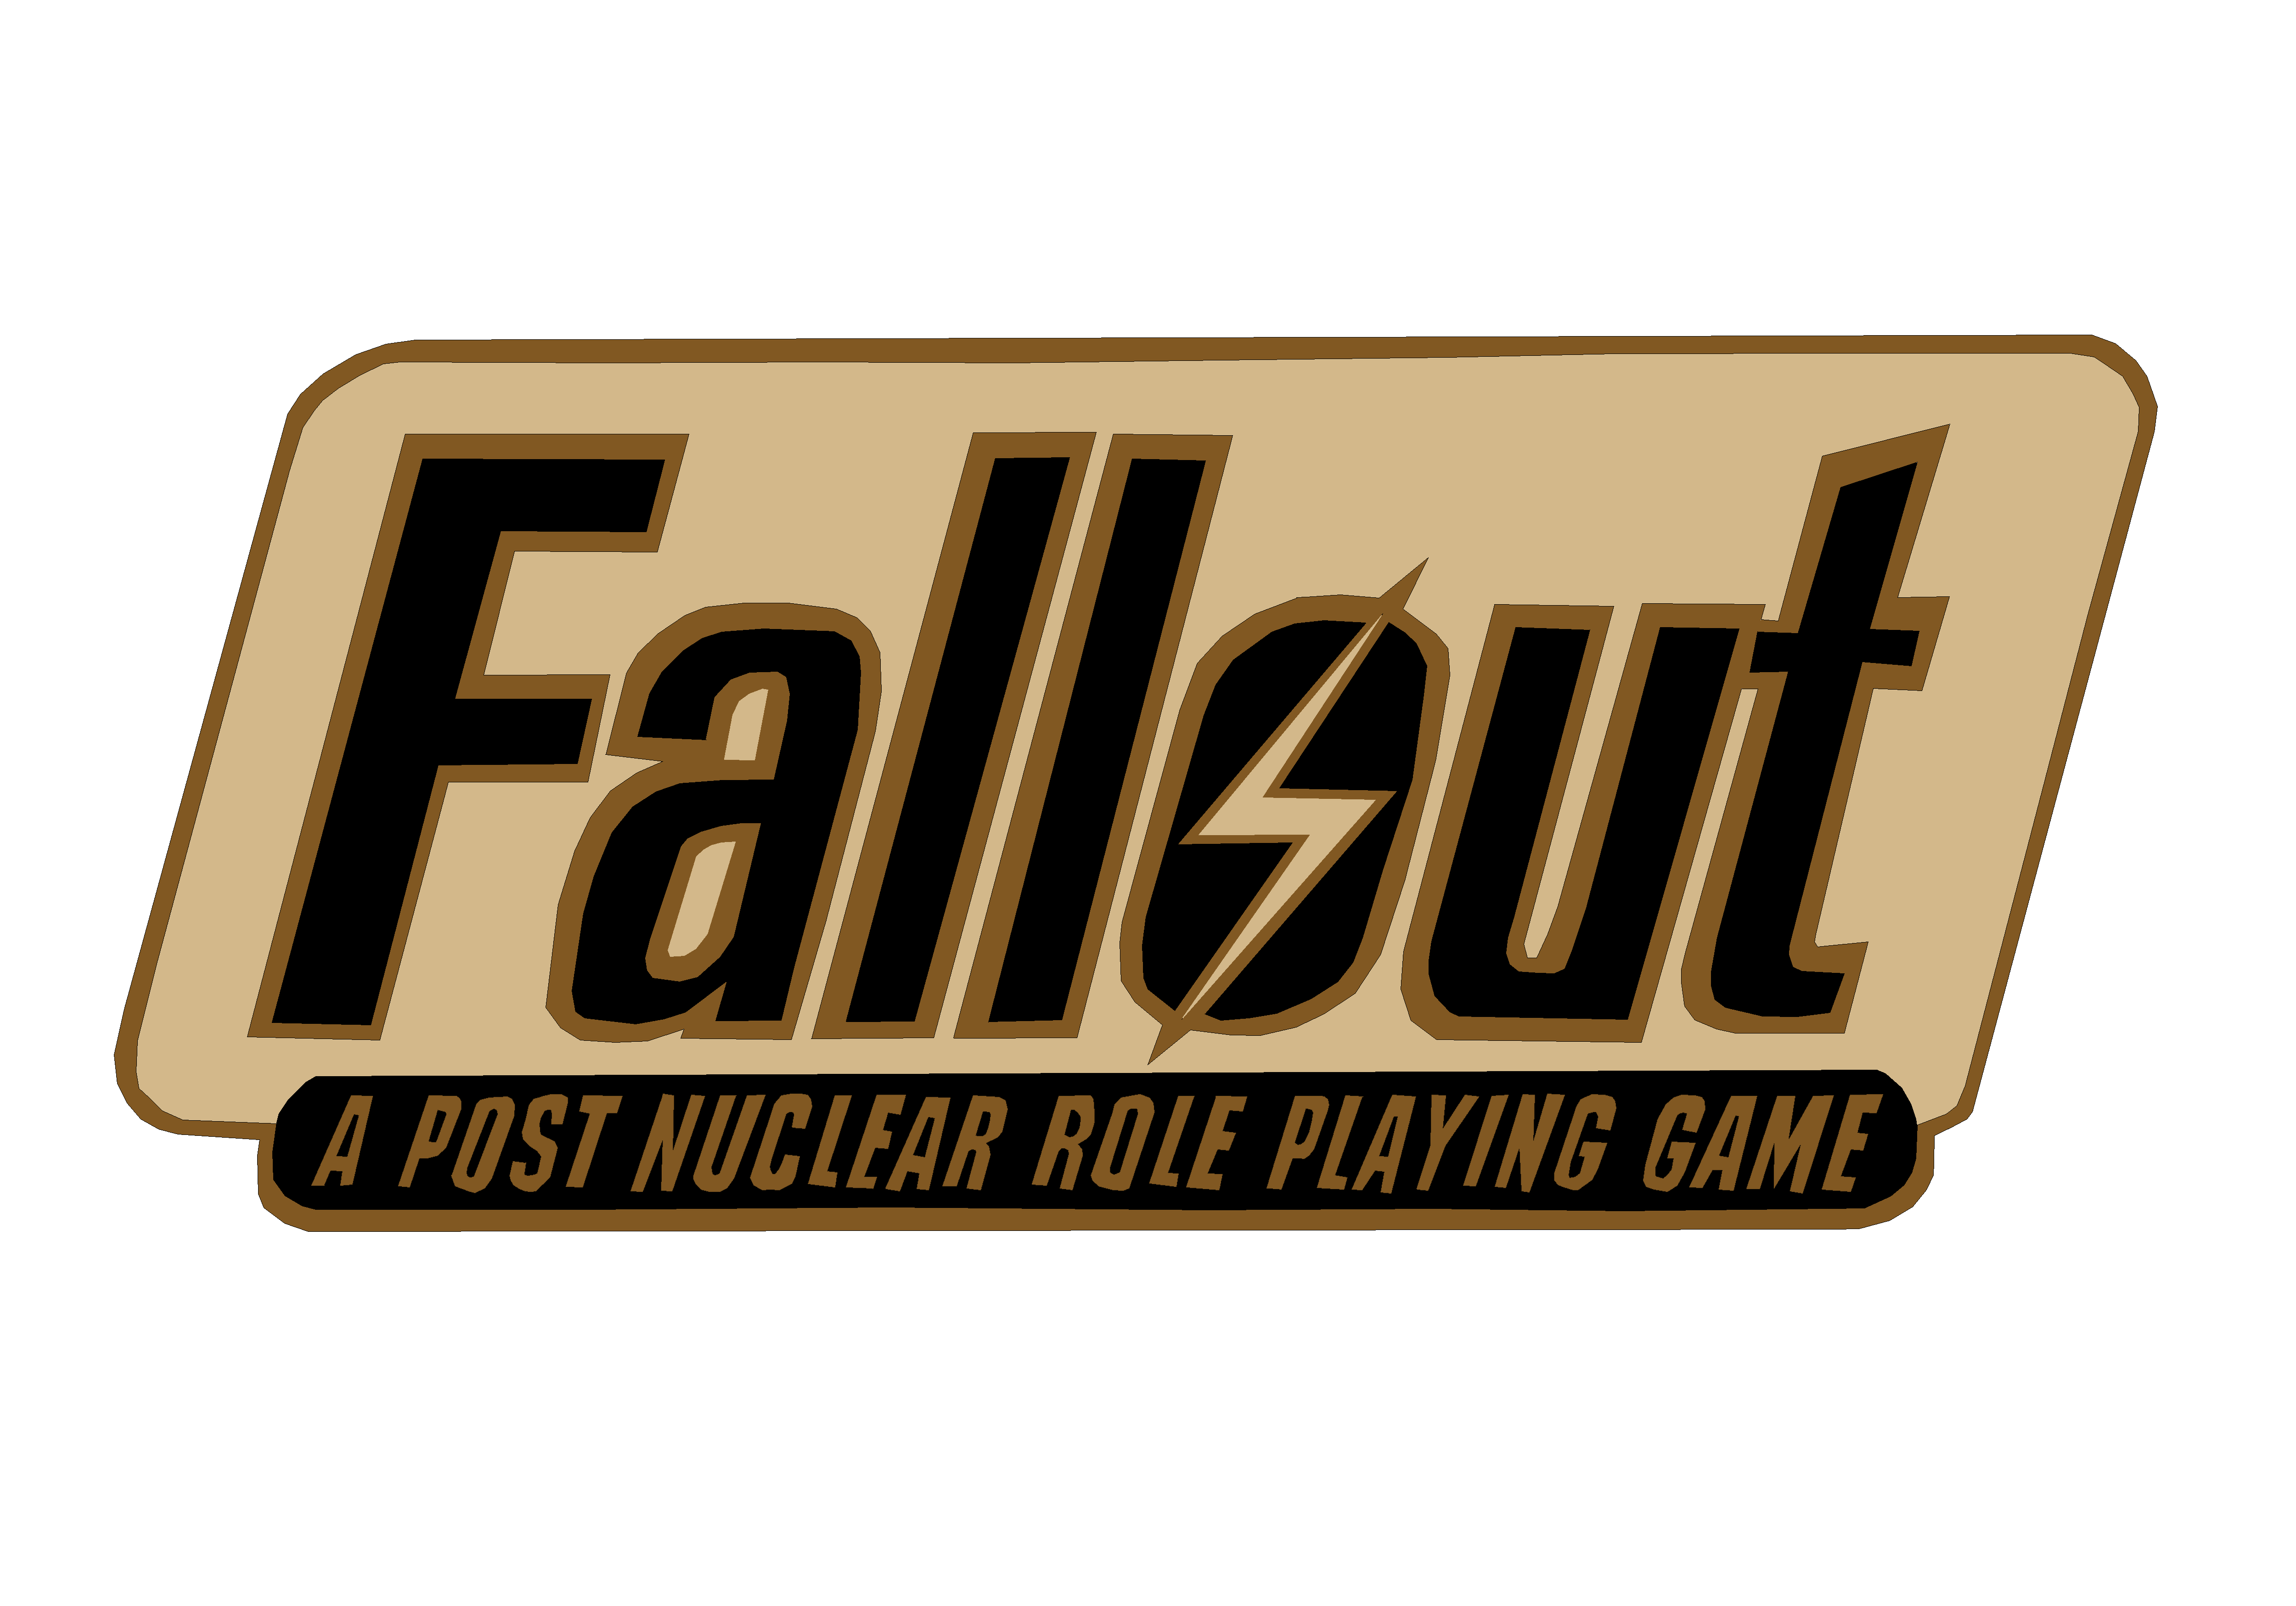 svg freeuse stock Arcade clipart vintage carnival games. Download fallout logo image